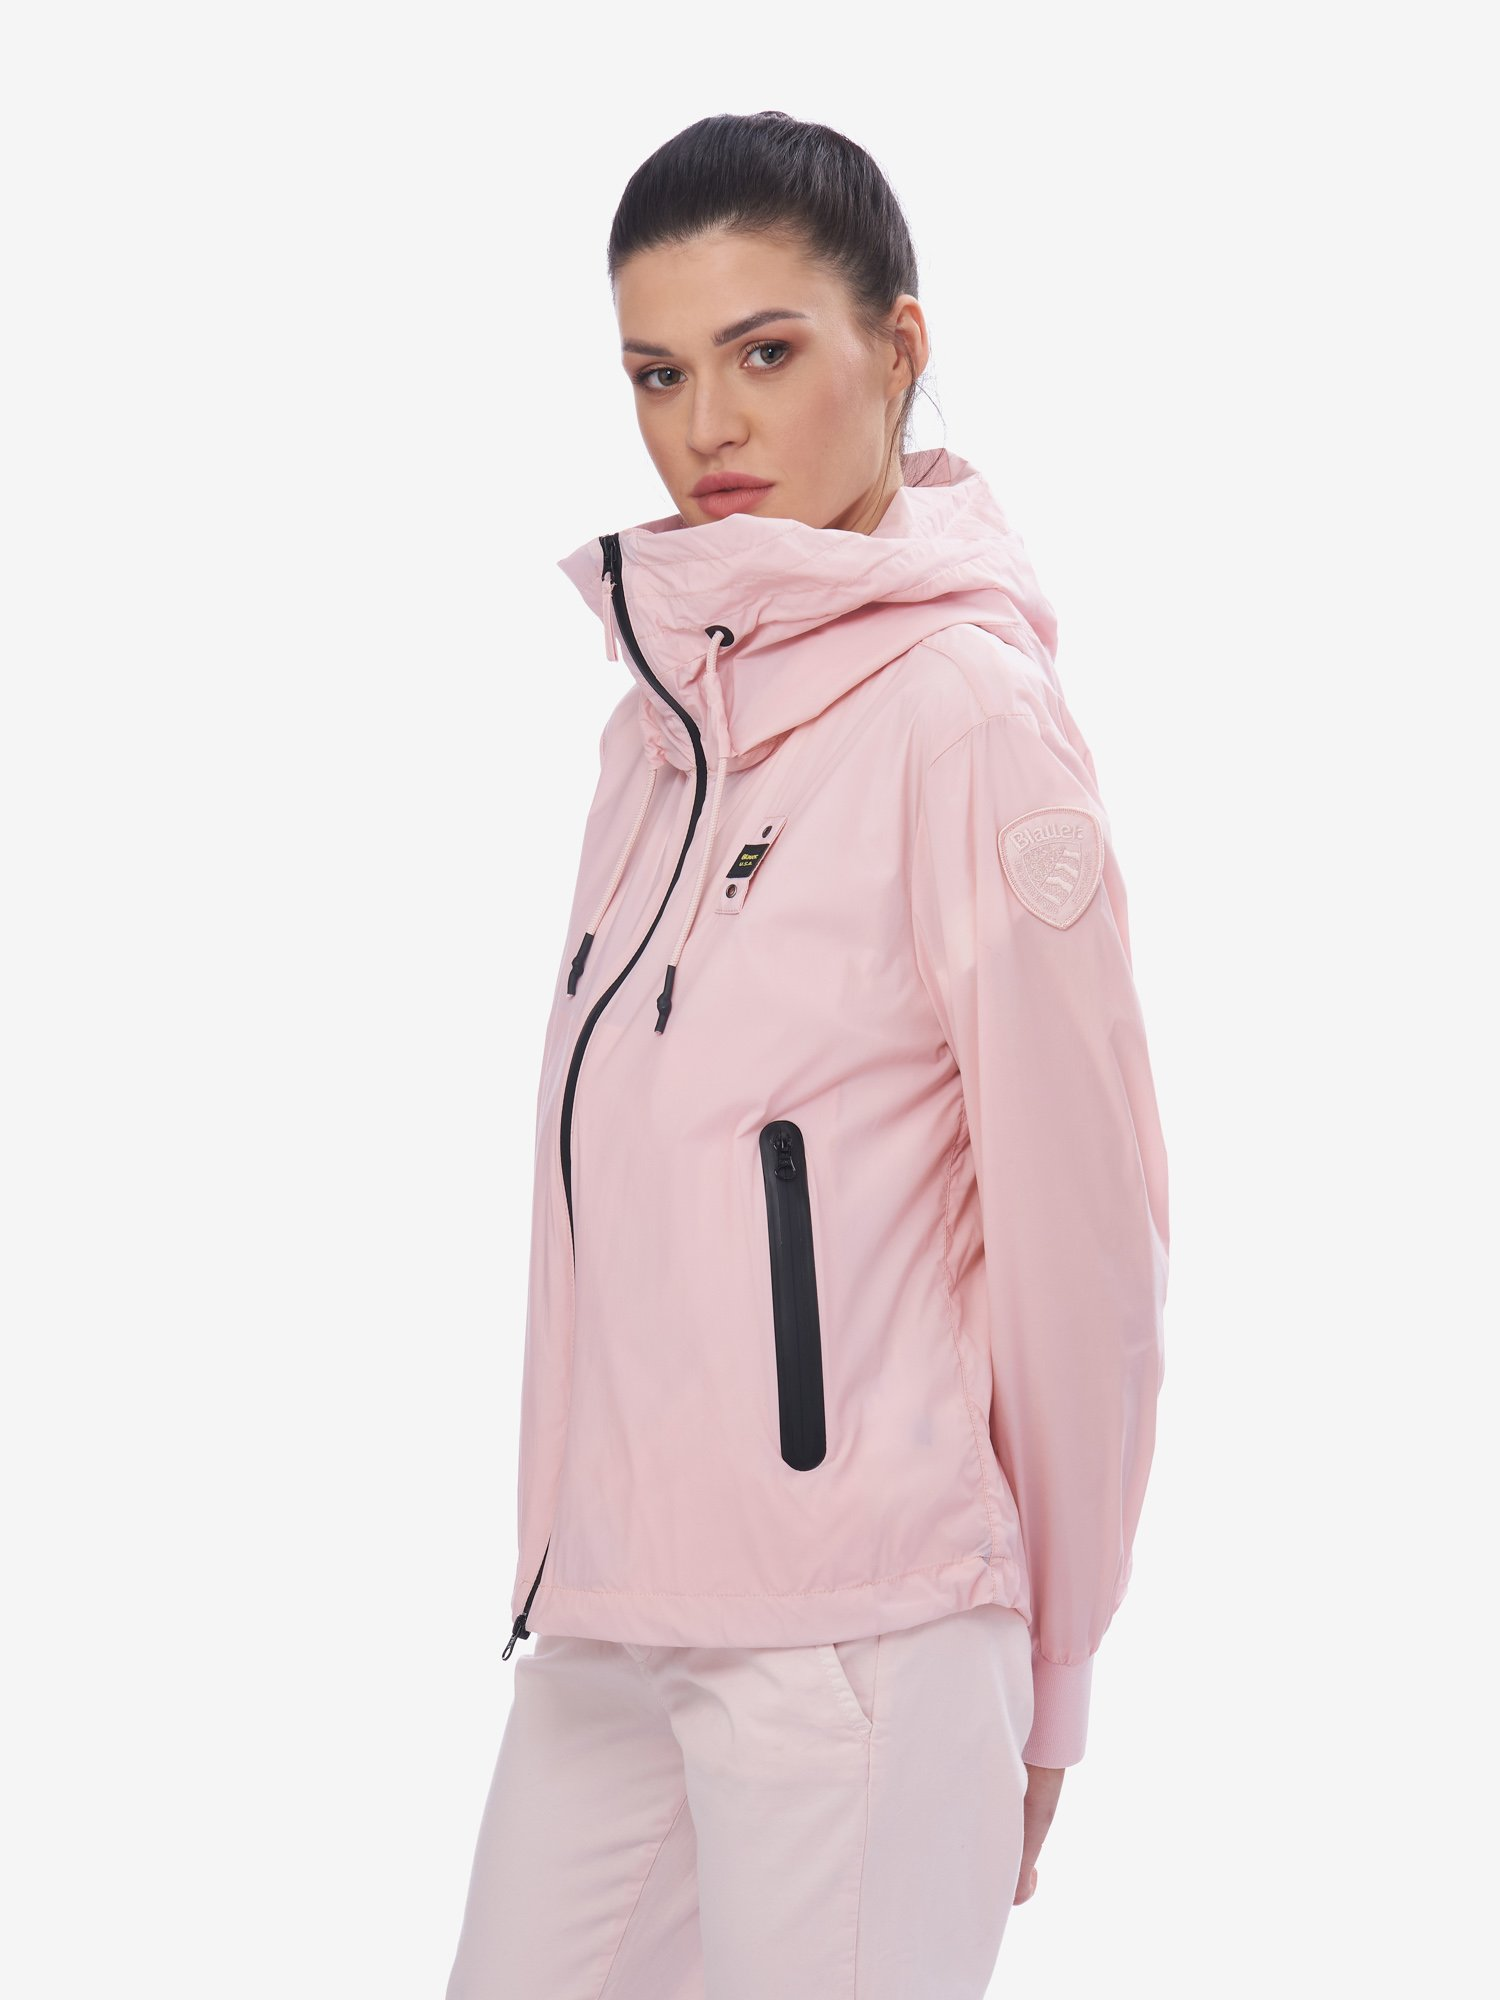 Blauer - LYNCH STRETCH UNLINED JACKET - Pink Pastel - Blauer